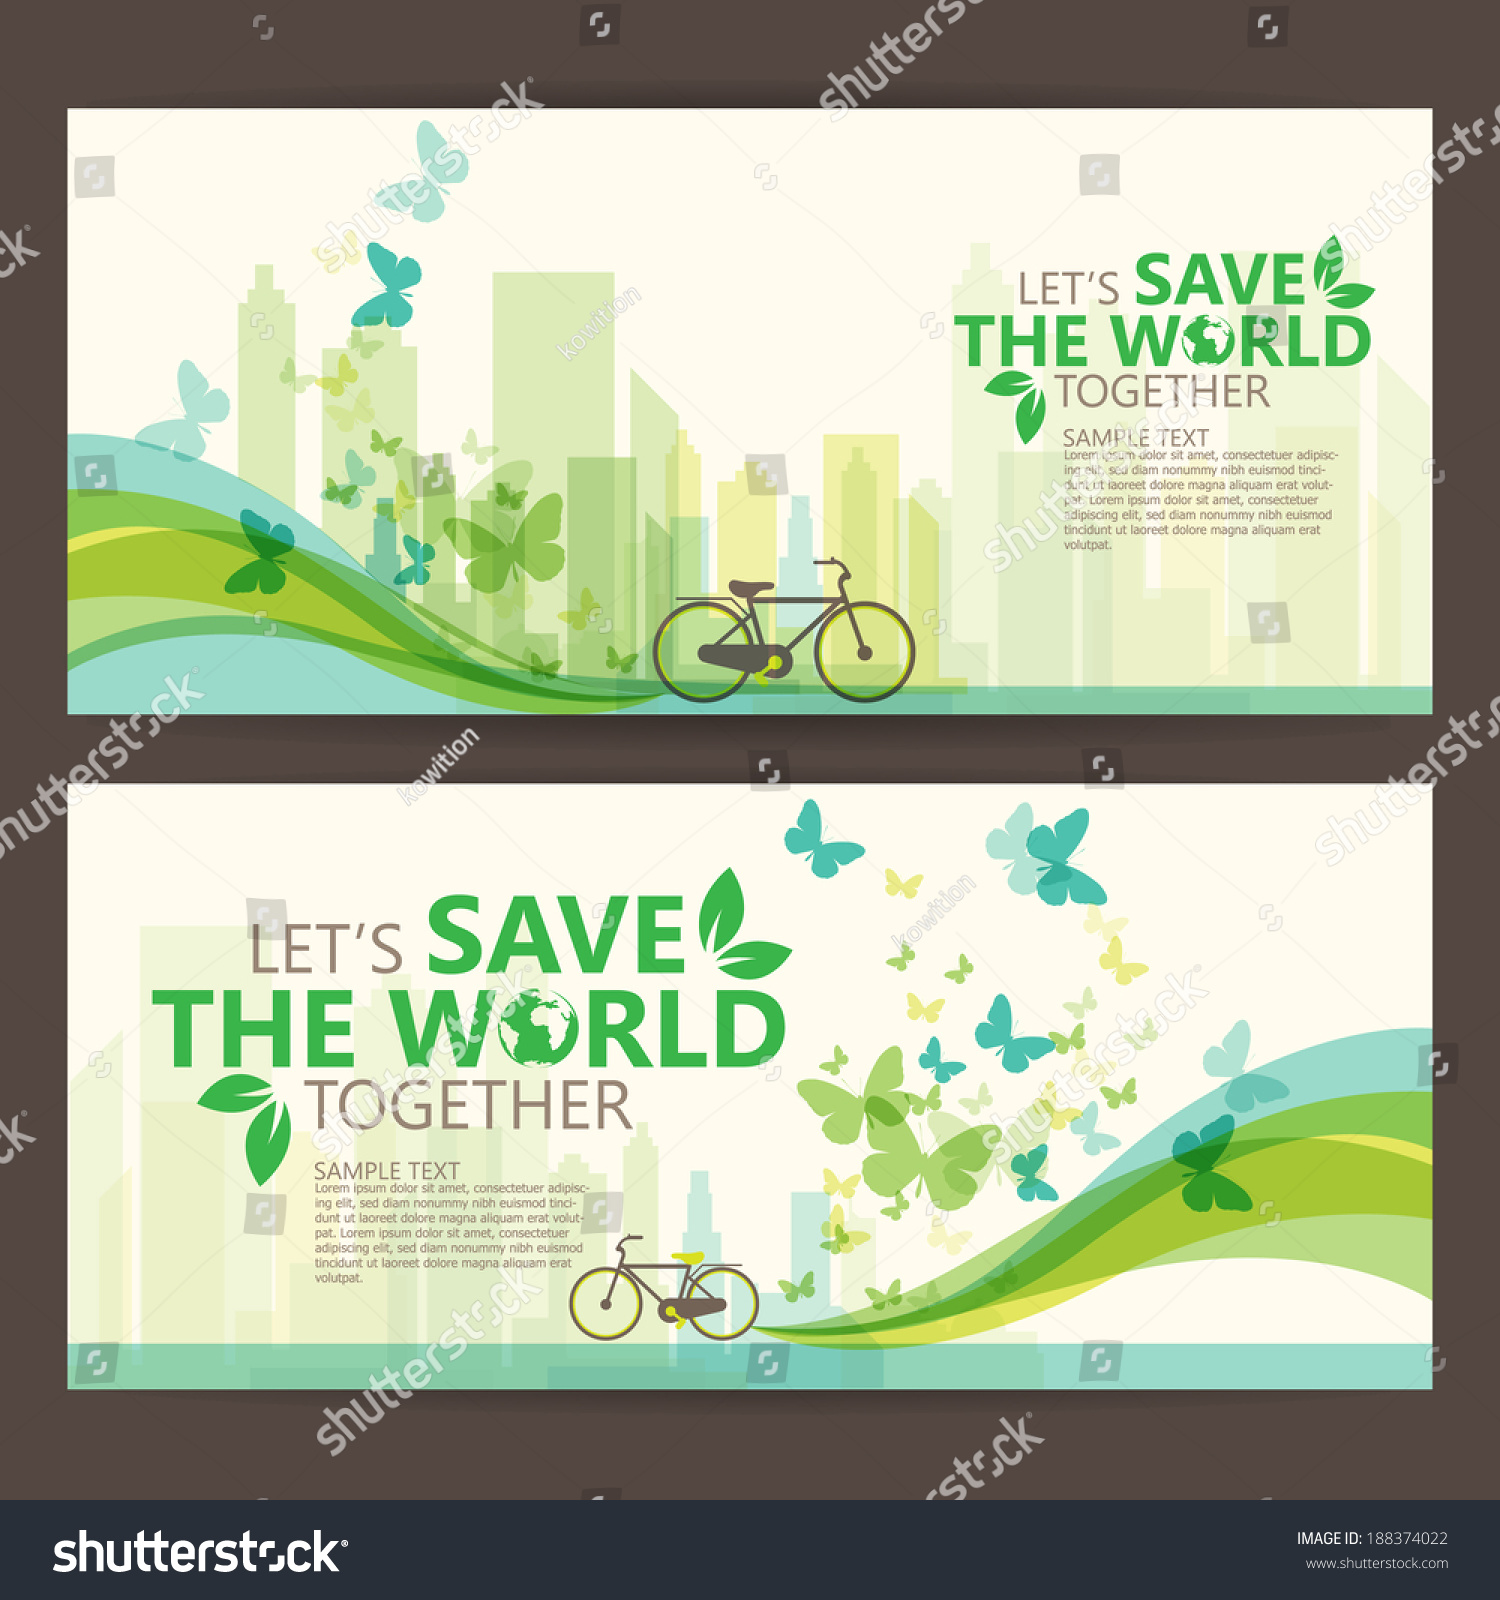 Office waste paper or Printing Companies Contact me for the top prices in waste paper, confidential paper will be destroyed